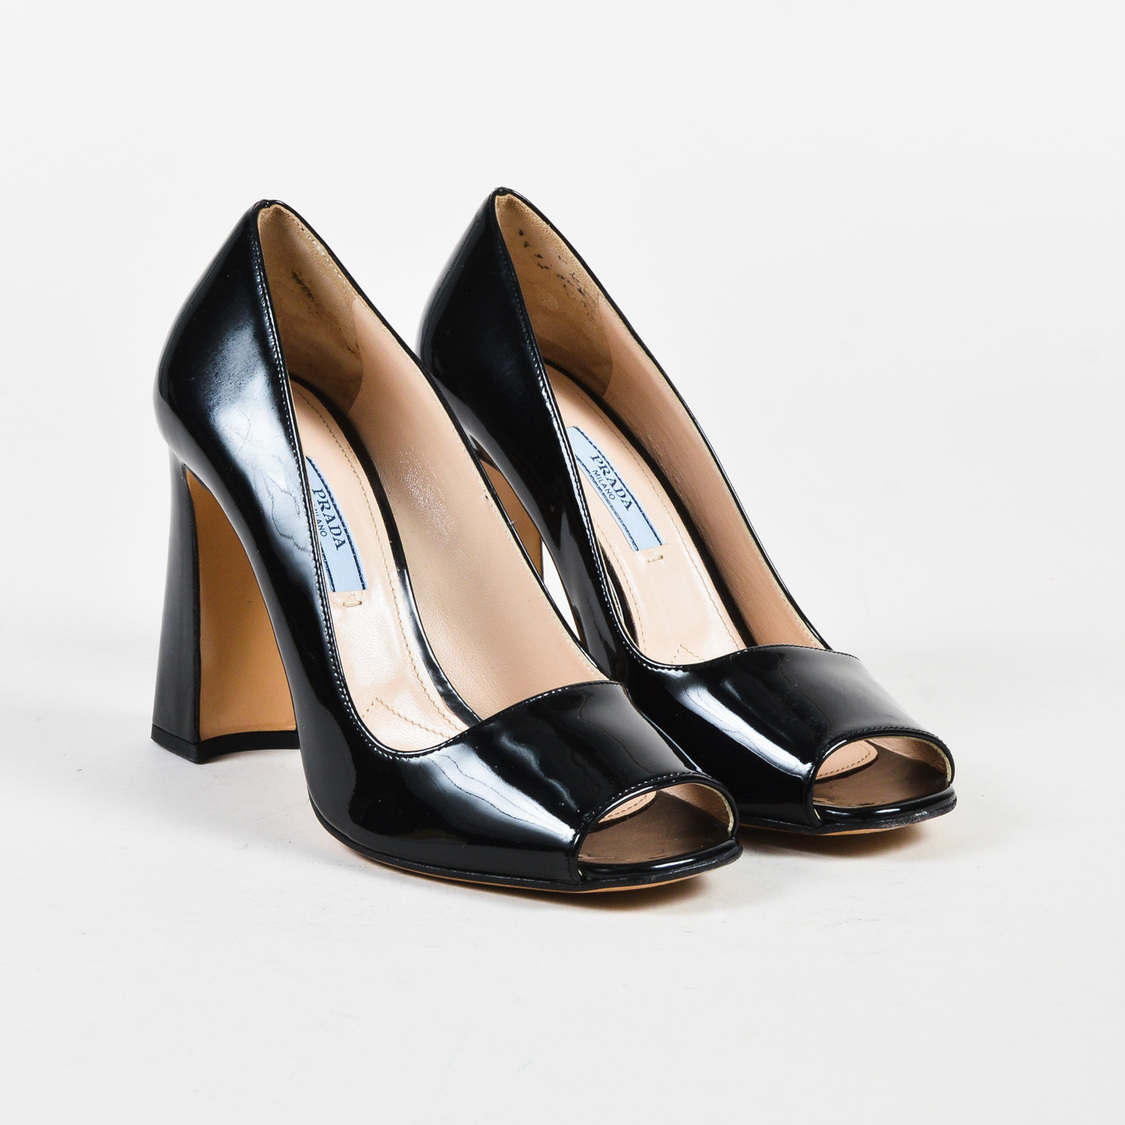 Pumps & High Heels for Women, Black, Patent Saffiano Leather, 2017, 3.5 4 4.5 5 5.5 6 6.5 7 Prada